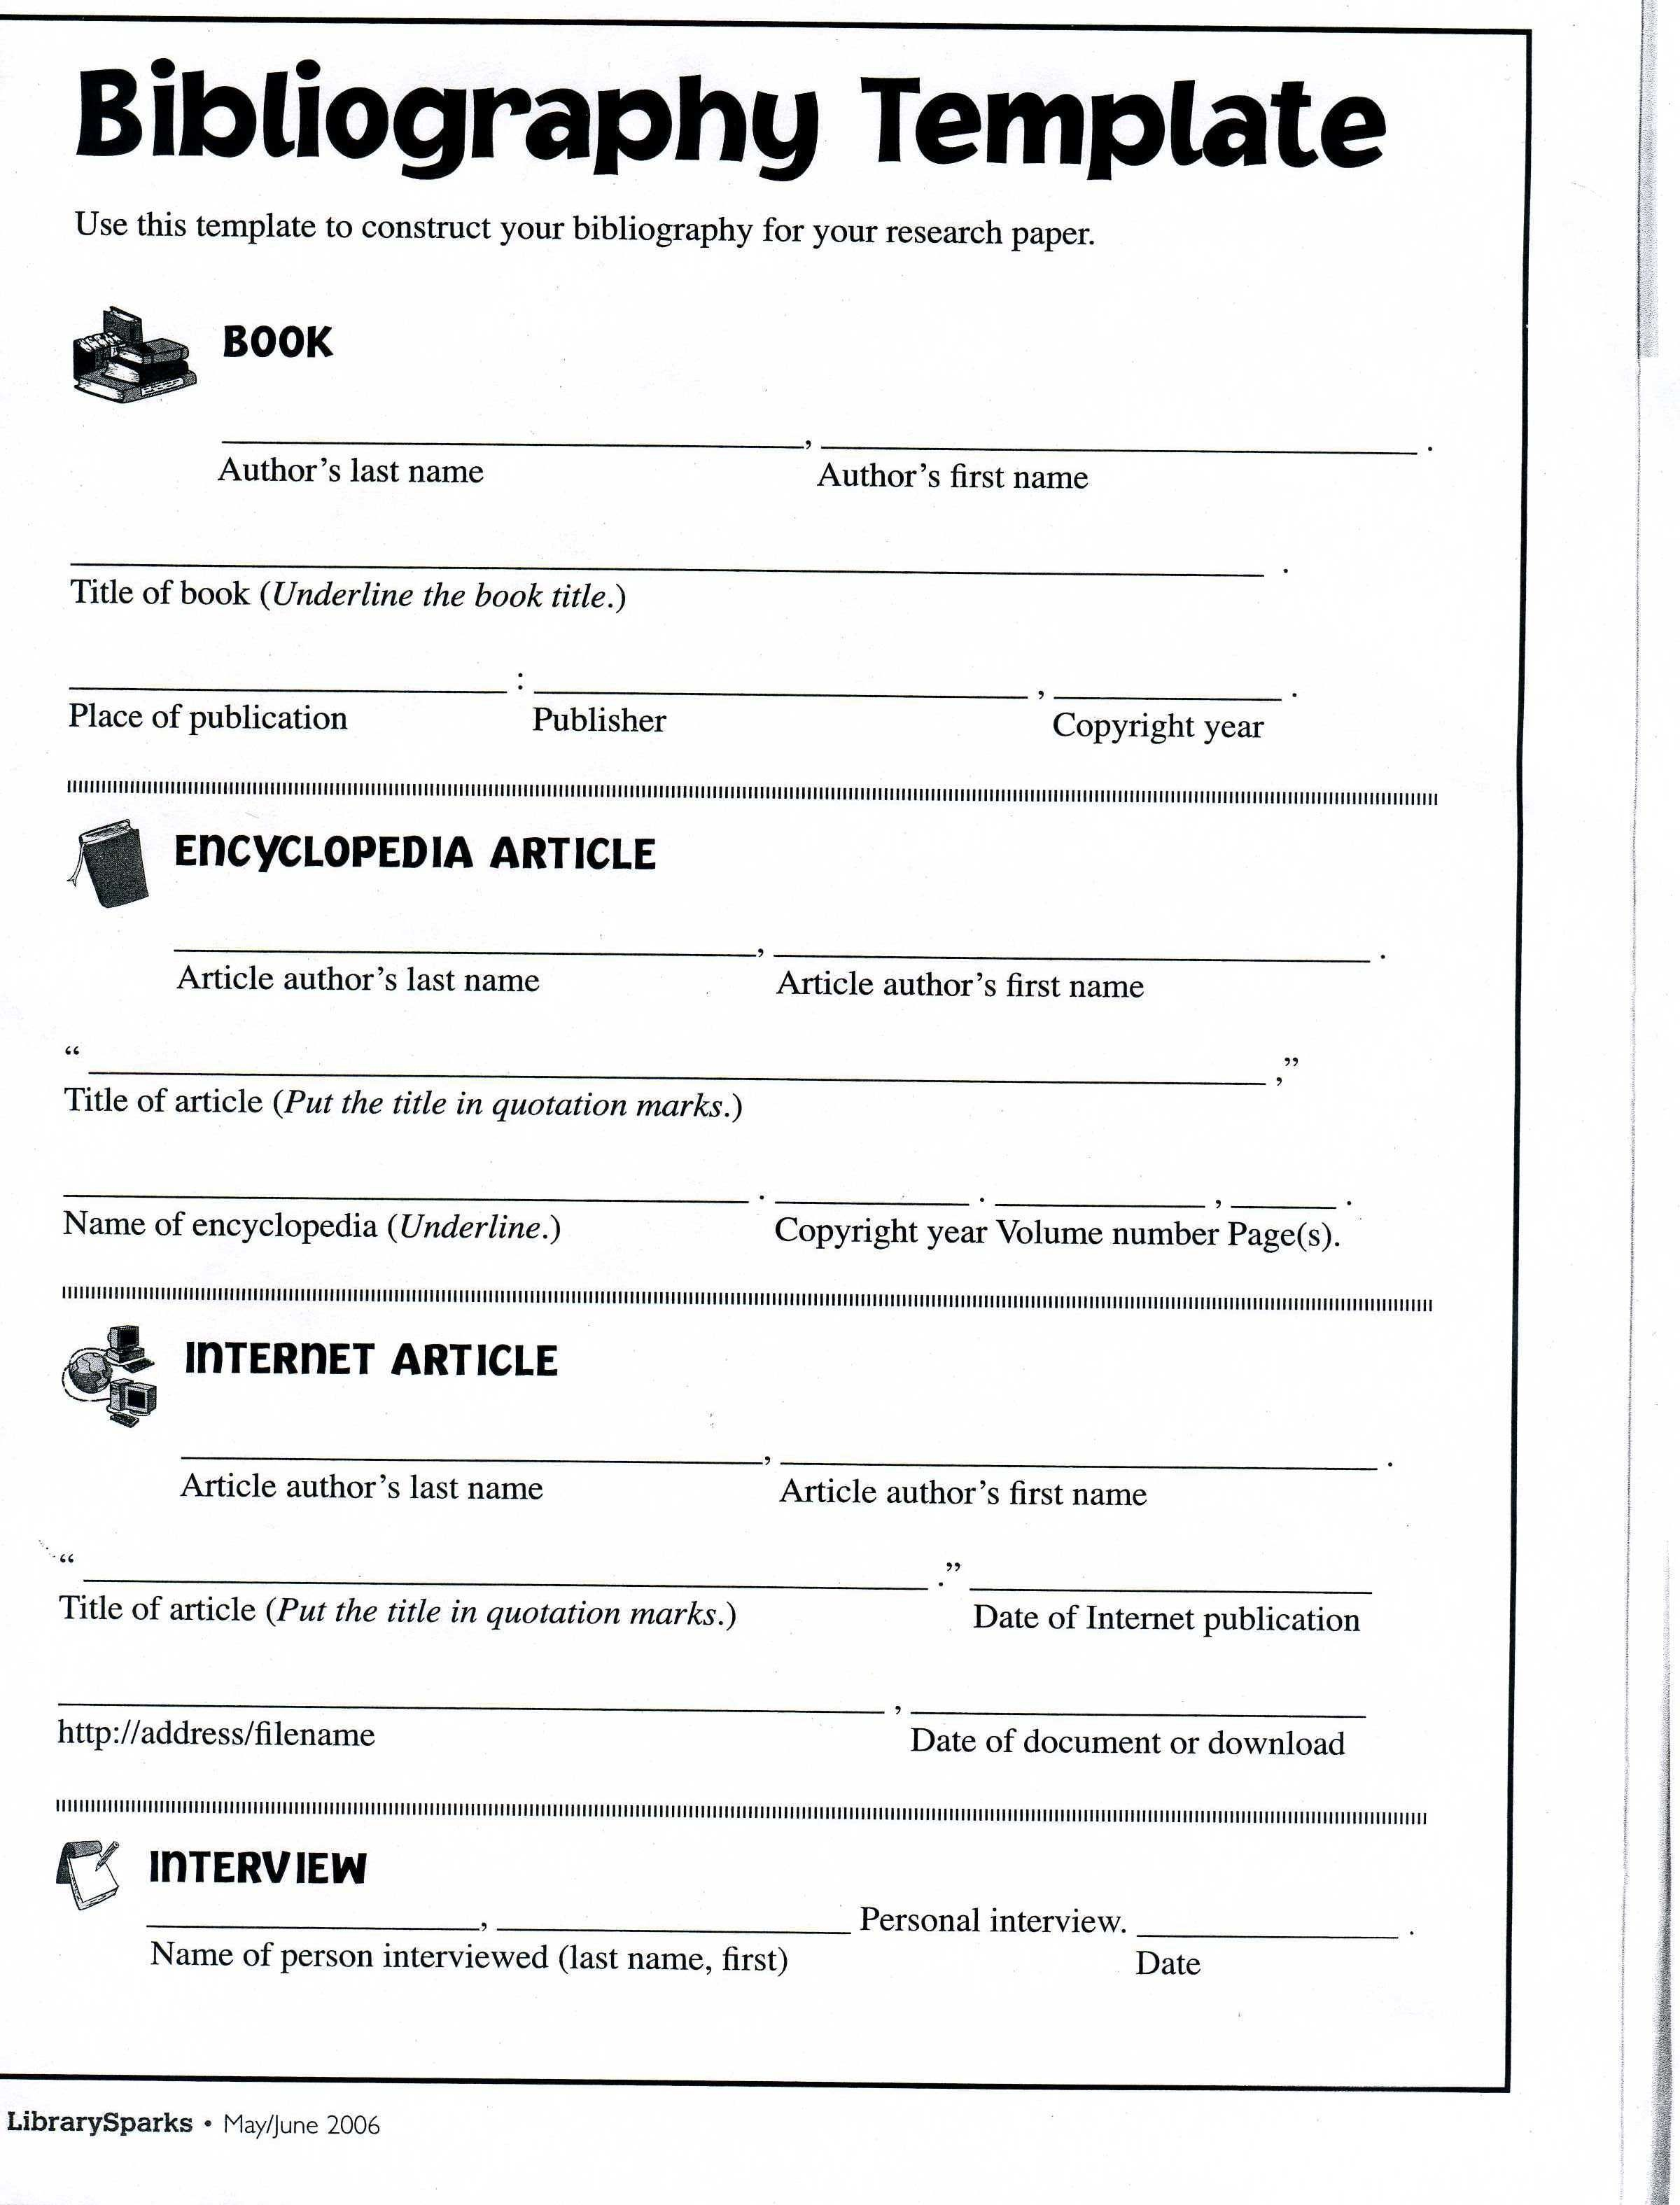 bibliography template mla middle school - Google Search | Library ...